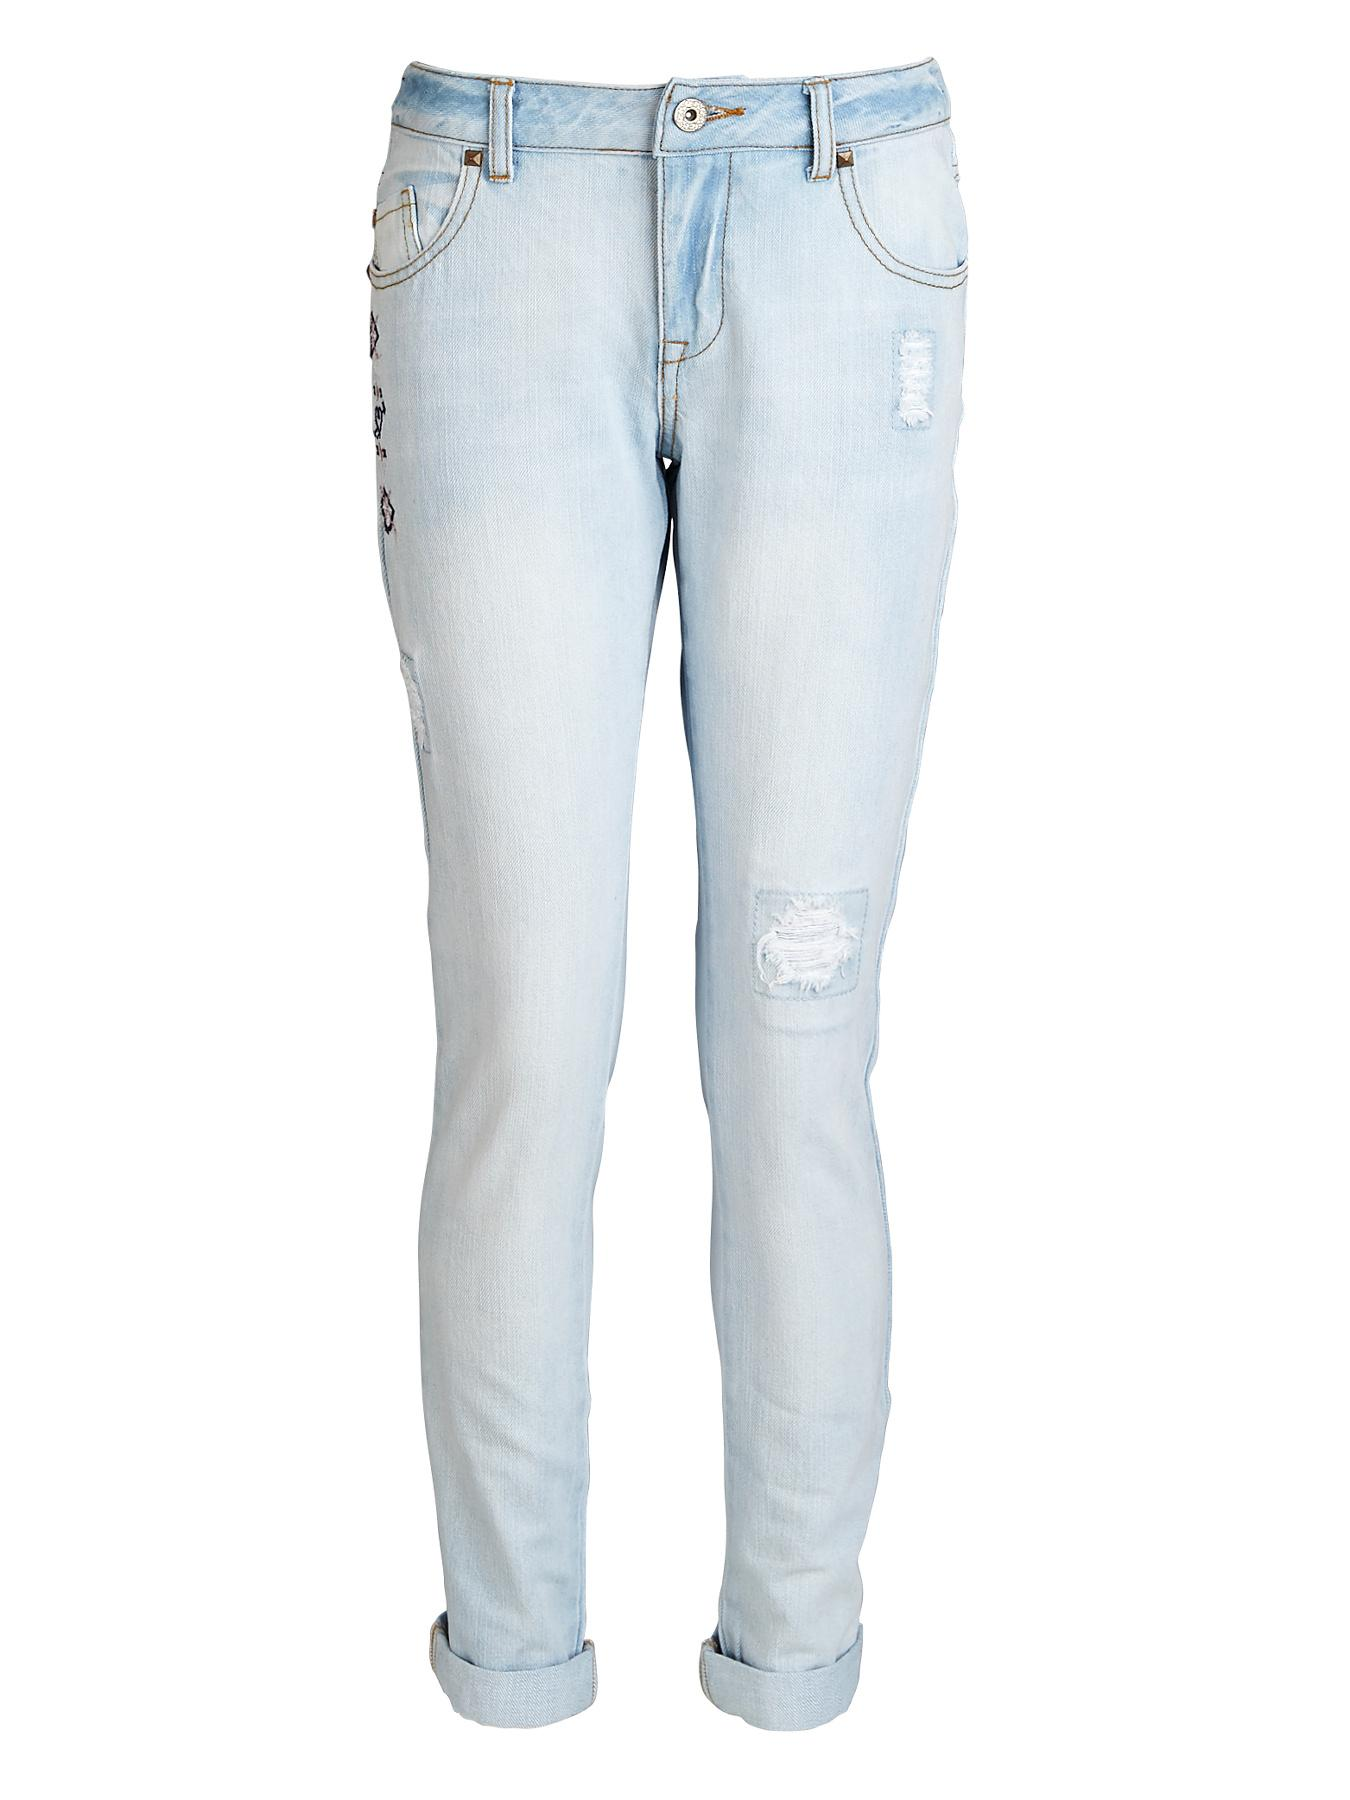 Freespirit Girls Bleached Girlfriend Fit Jeans with Rips and Embroidery